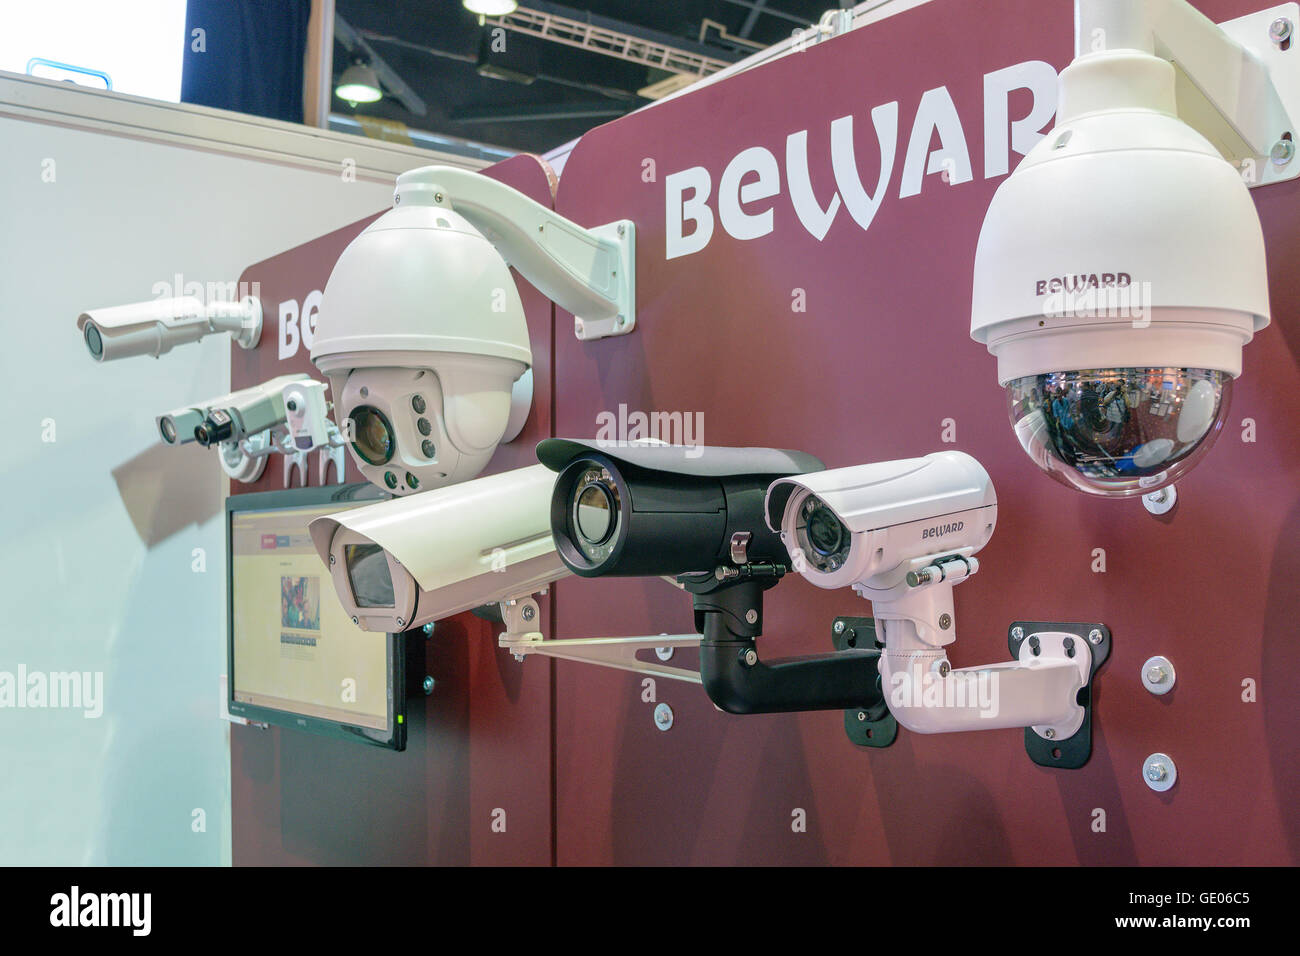 Video surveillance cameras at showcase of the company 'BeWard' on electrotechnical forum in the building - Stock Image